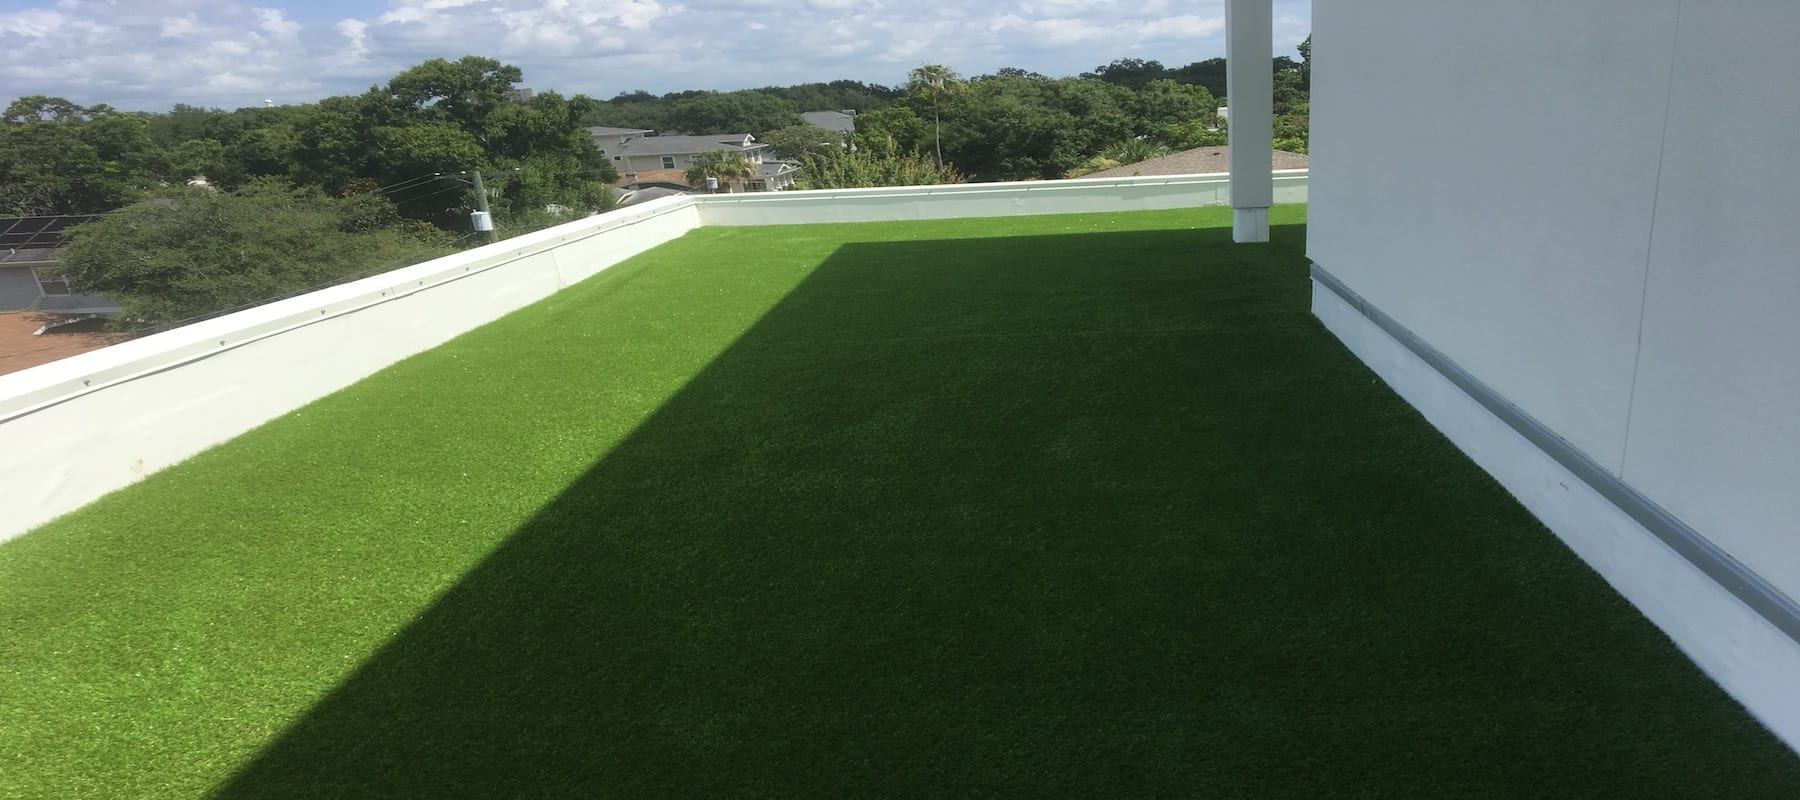 Top 5 Reasons To Have Artificial Turf Professionally Installed